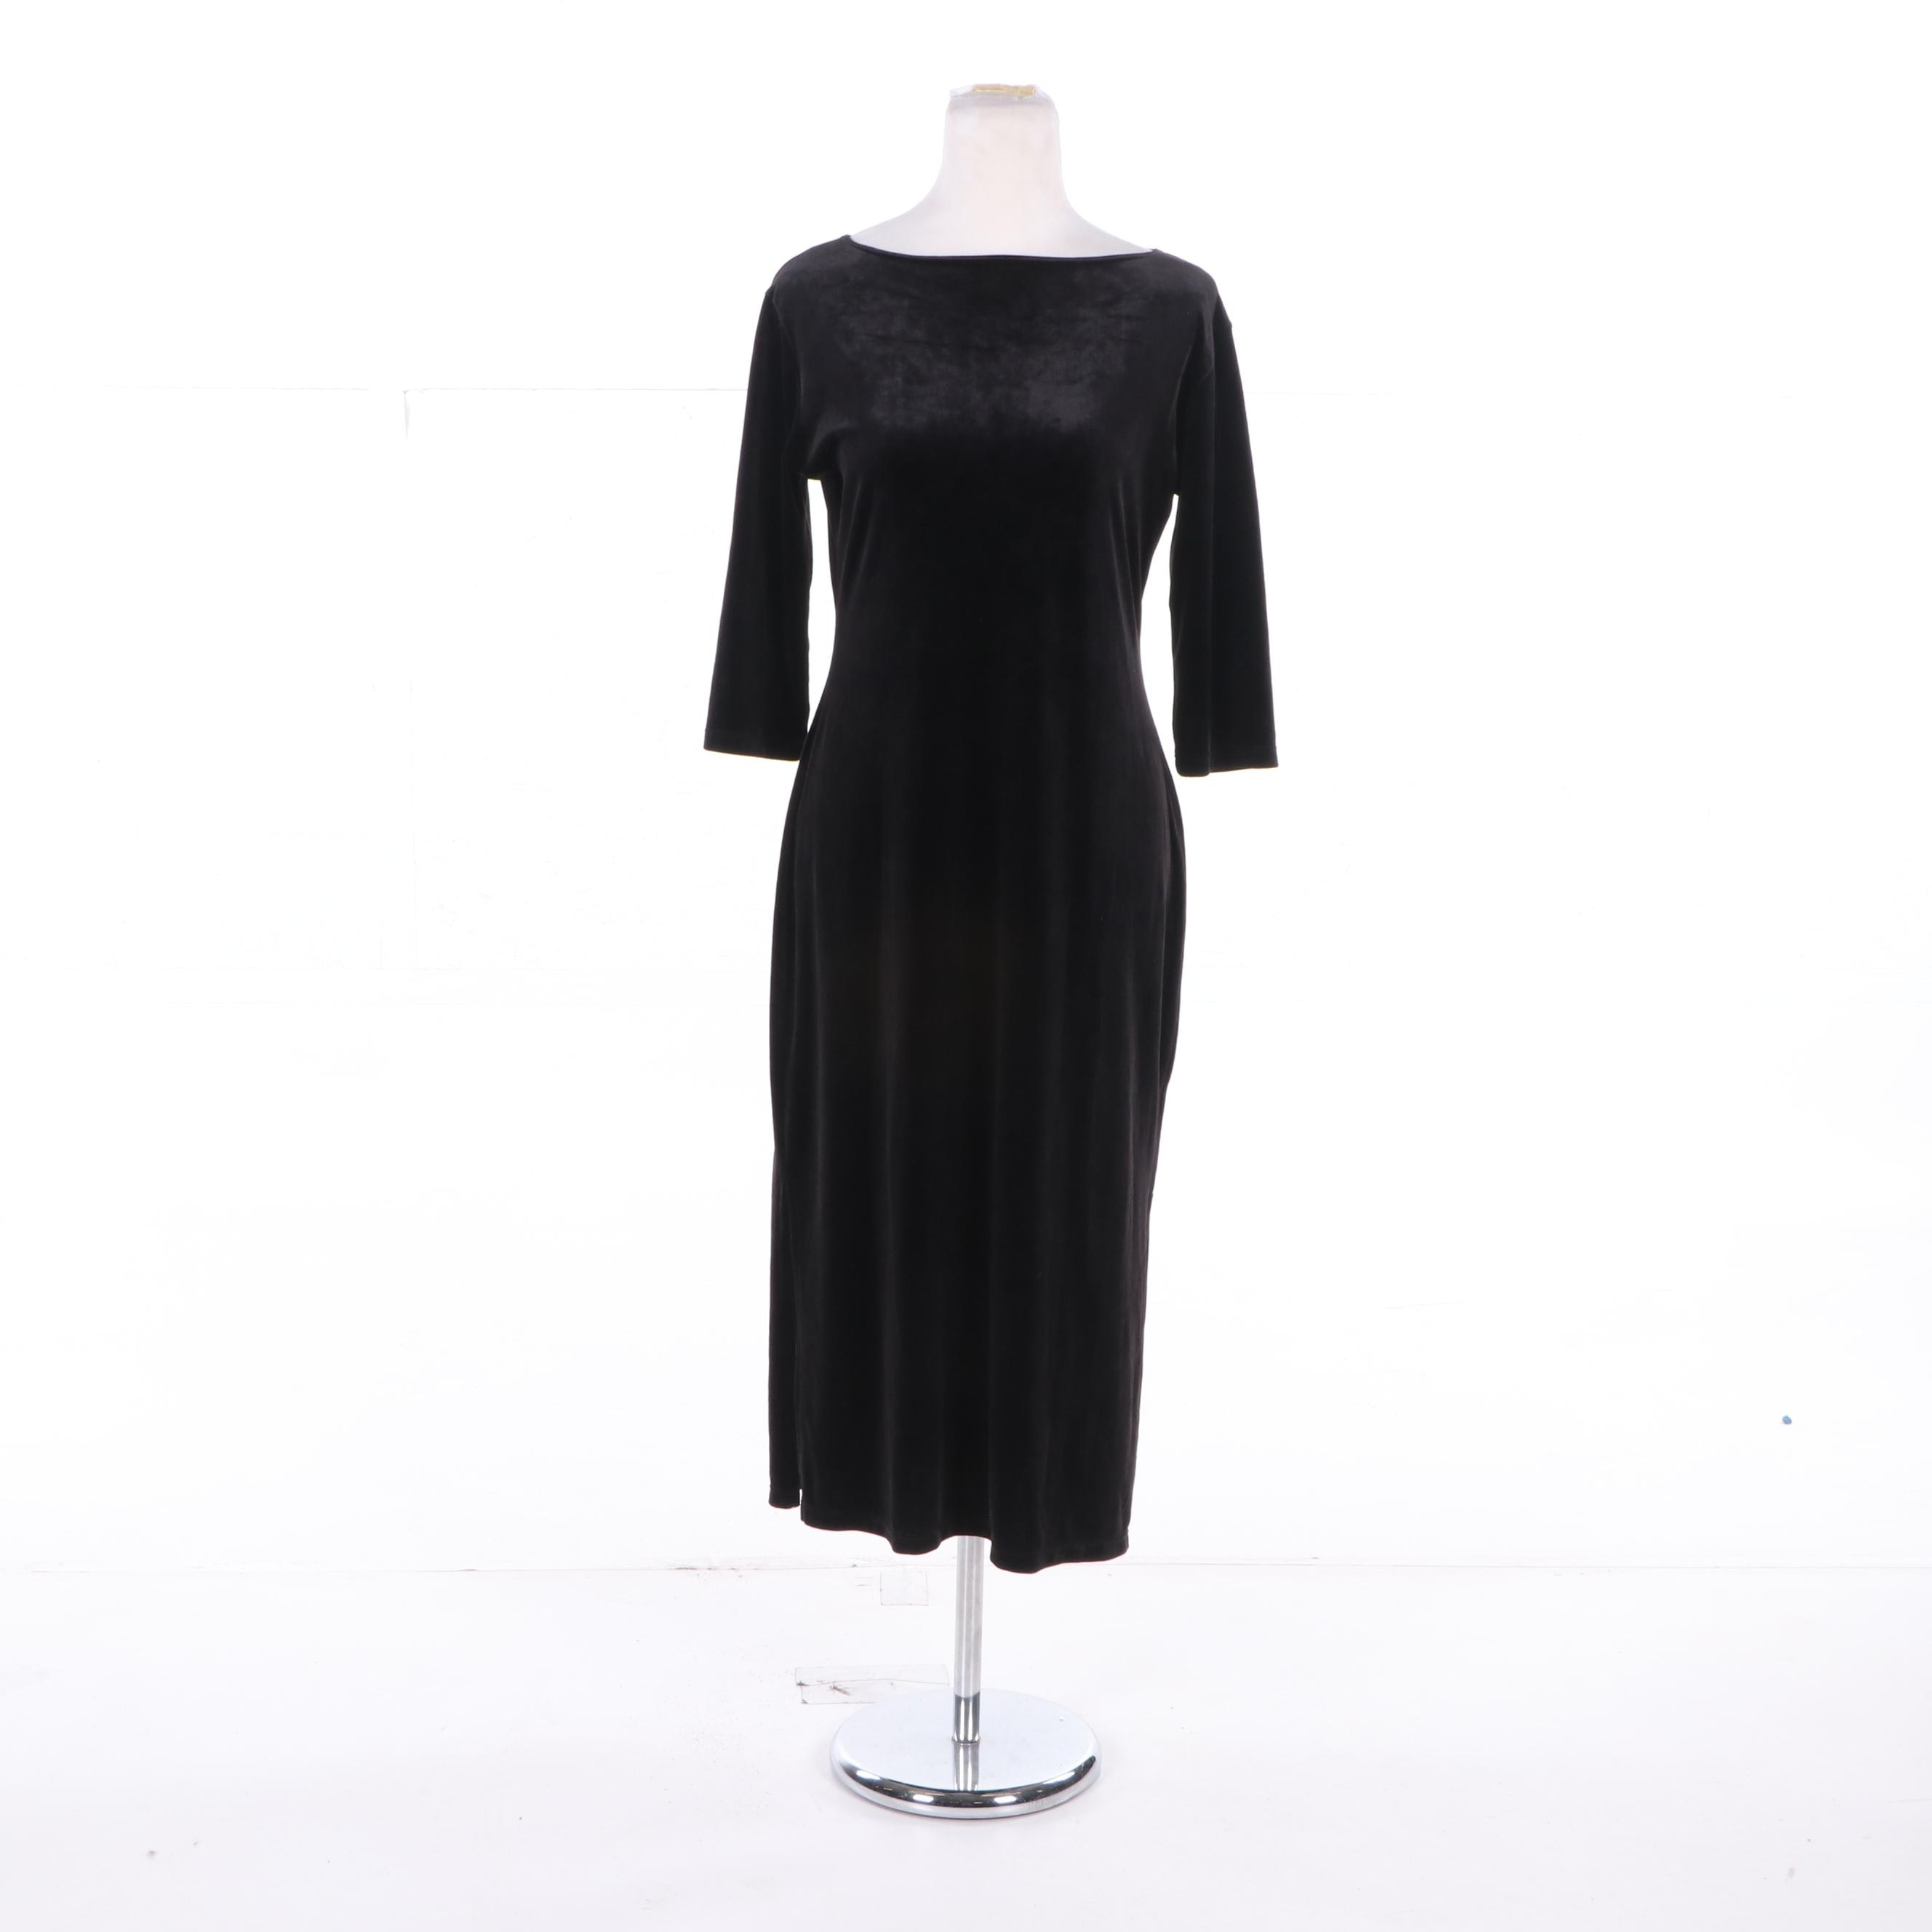 Barneys New York Co-Op Black Velveteen Dress